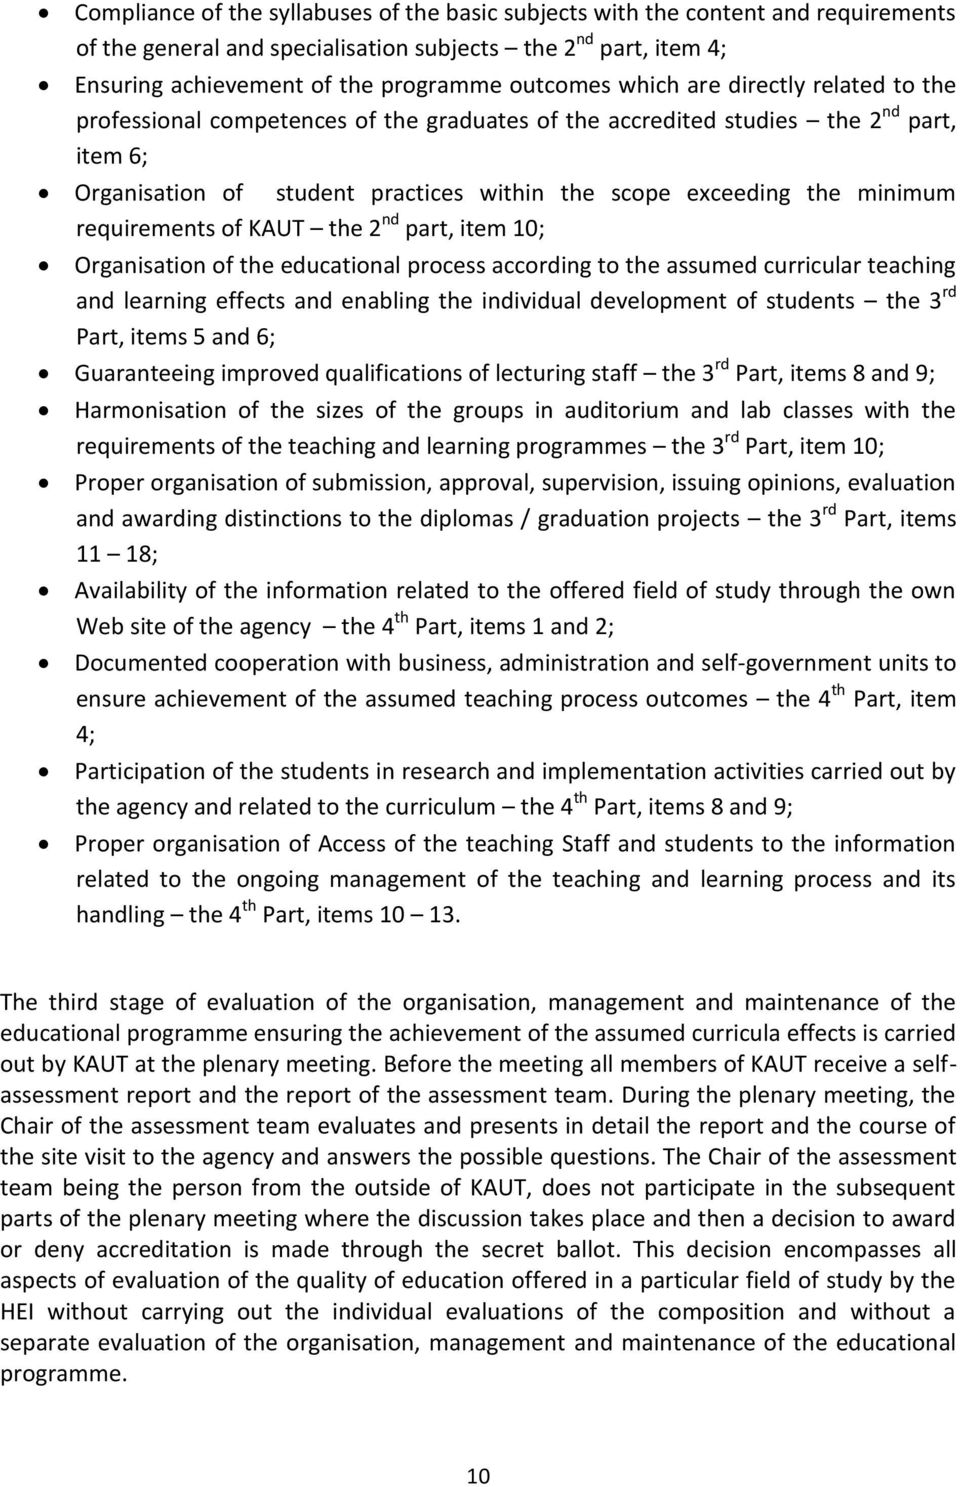 requirements of KAUT the 2 nd part, item 10; Organisation of the educational process according to the assumed curricular teaching and learning effects and enabling the individual development of